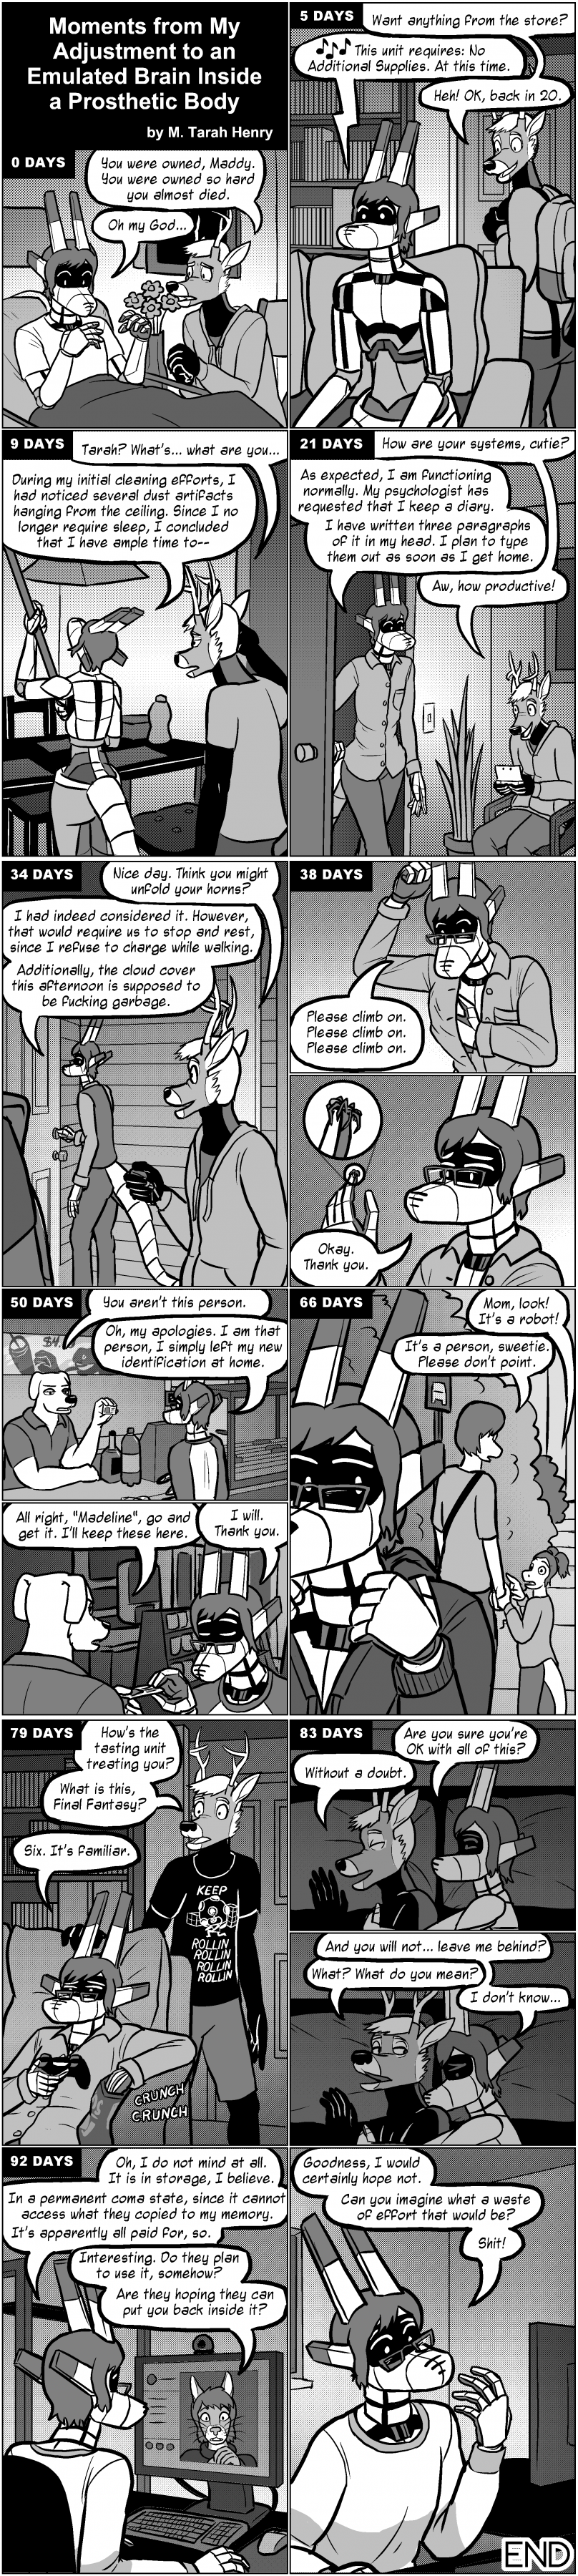 Comic: Moments From My Adjustment to an Emulated Brain Inside a Prosthetic Body